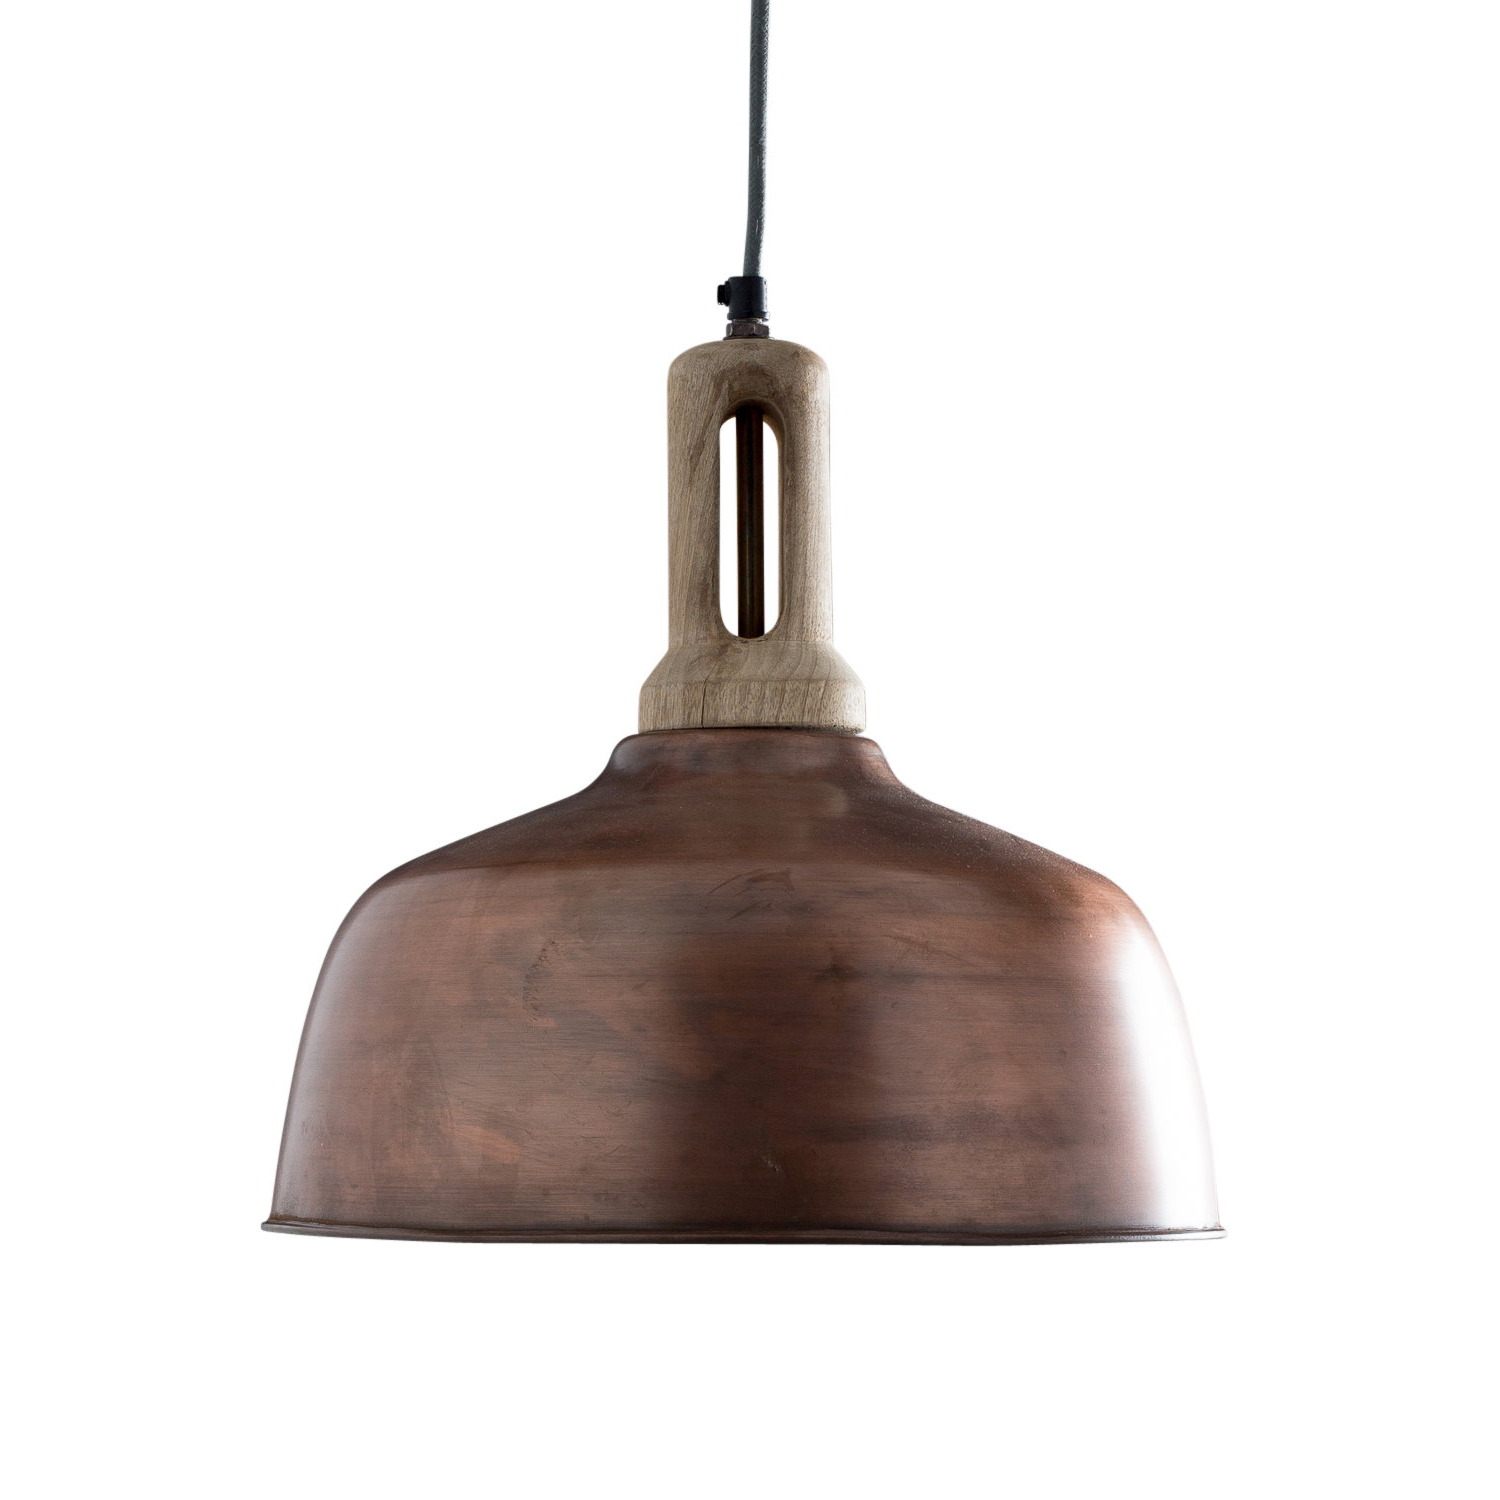 Glenam 1 Light Dome Pendant In Most Recently Released Conover 1 Light Dome Pendants (View 12 of 25)